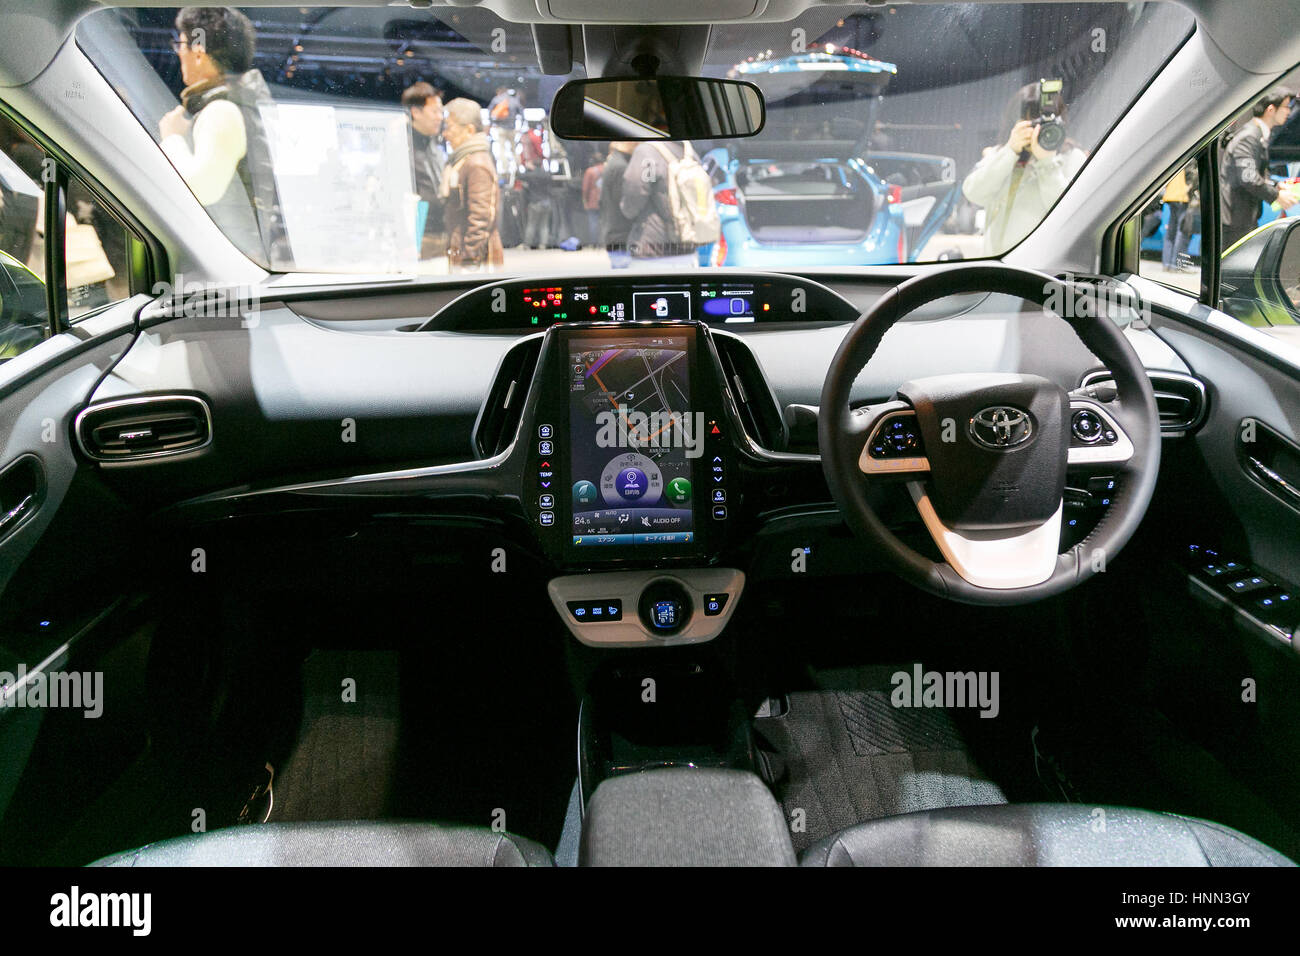 Tokyo, Japan. 15th February 2017. The 11.6 inch T-Connect SD Navigation System on display at the interior of the - Stock Image